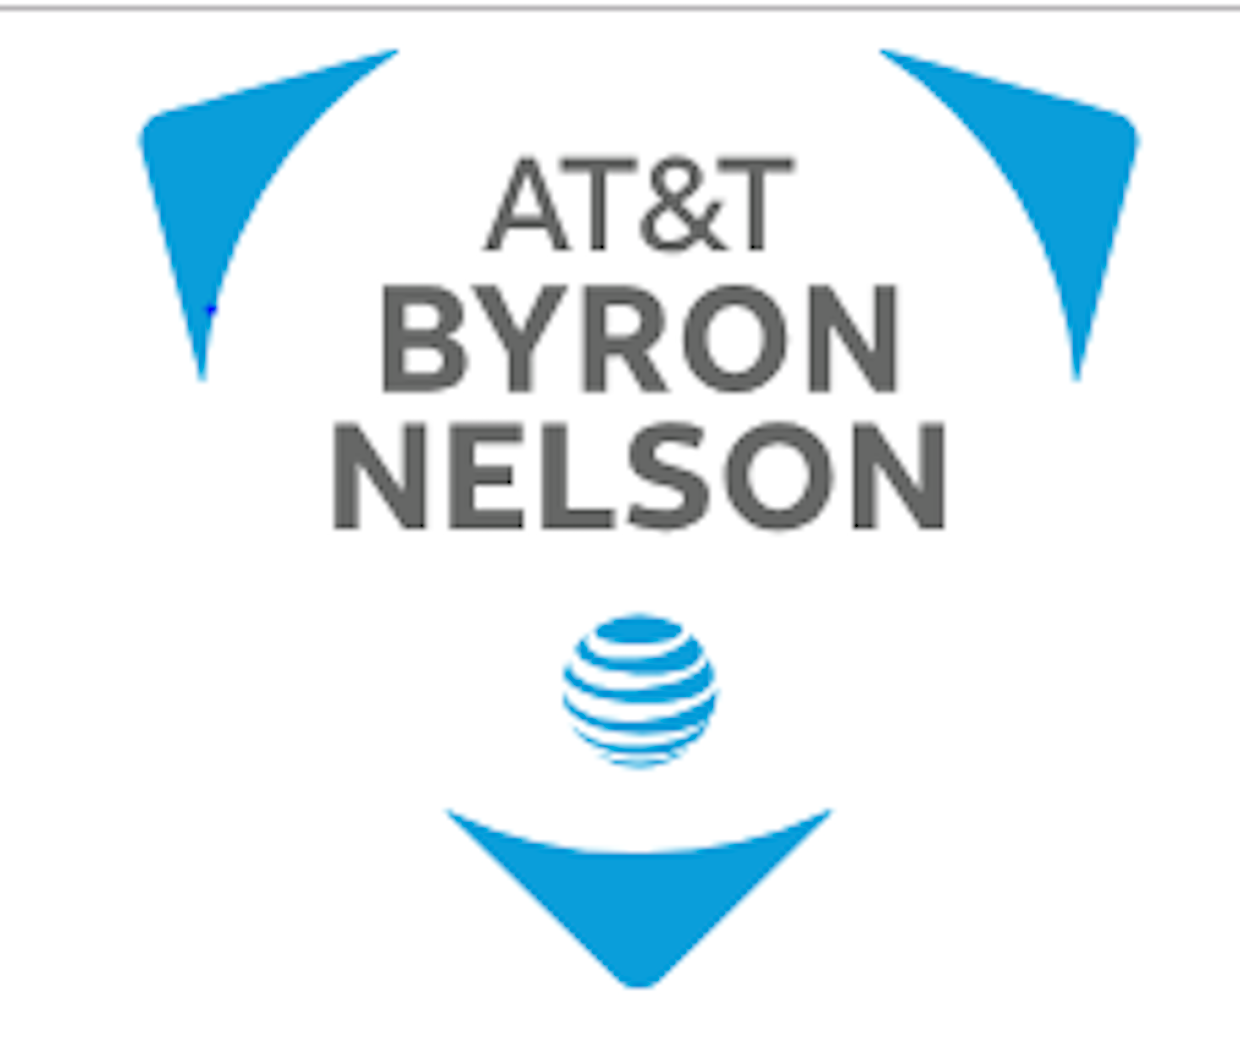 AT&T Byron Nelson Open